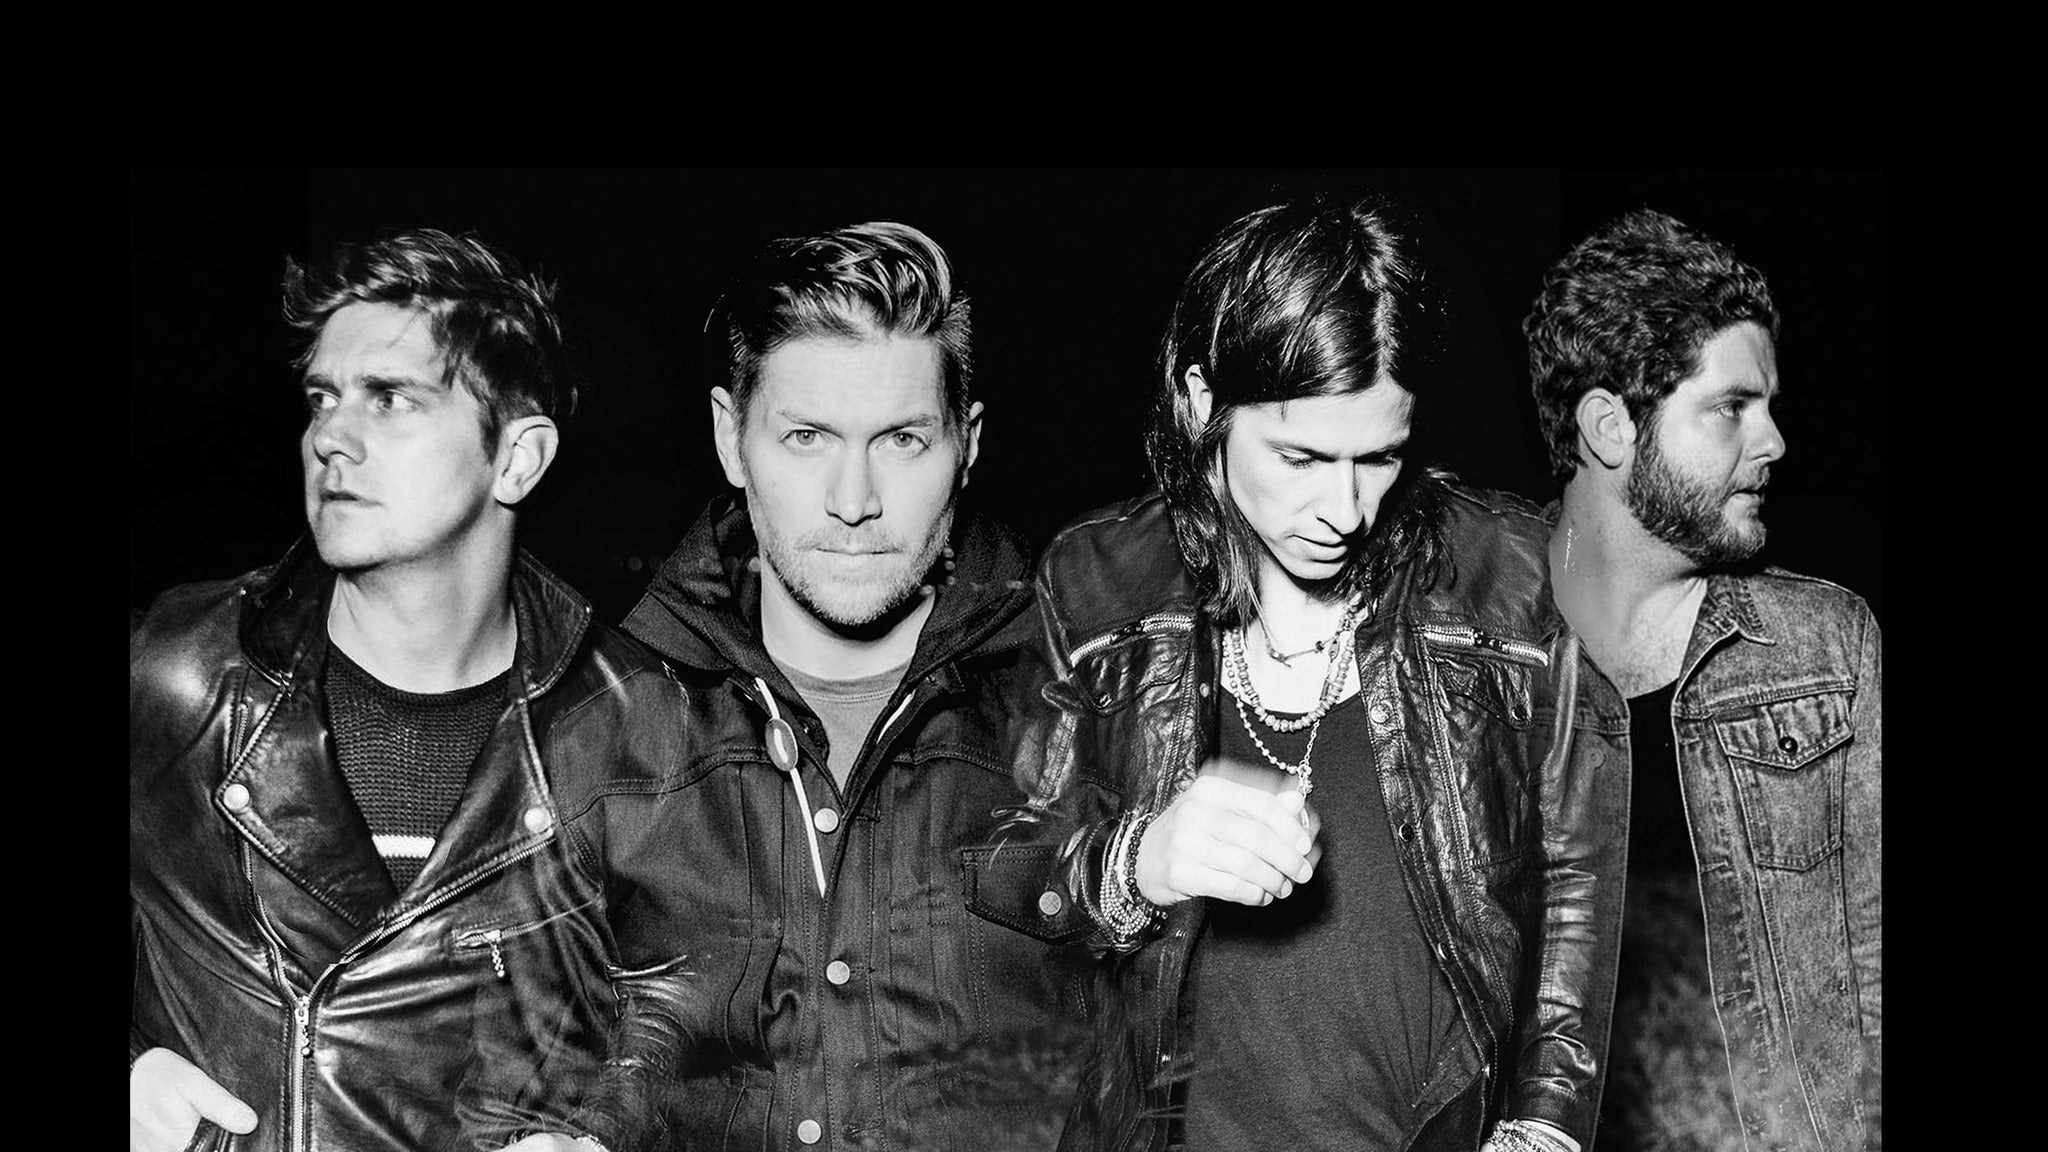 NEEDTOBREATHE Presents TOUR DE COMPADRES at Rupp Arena